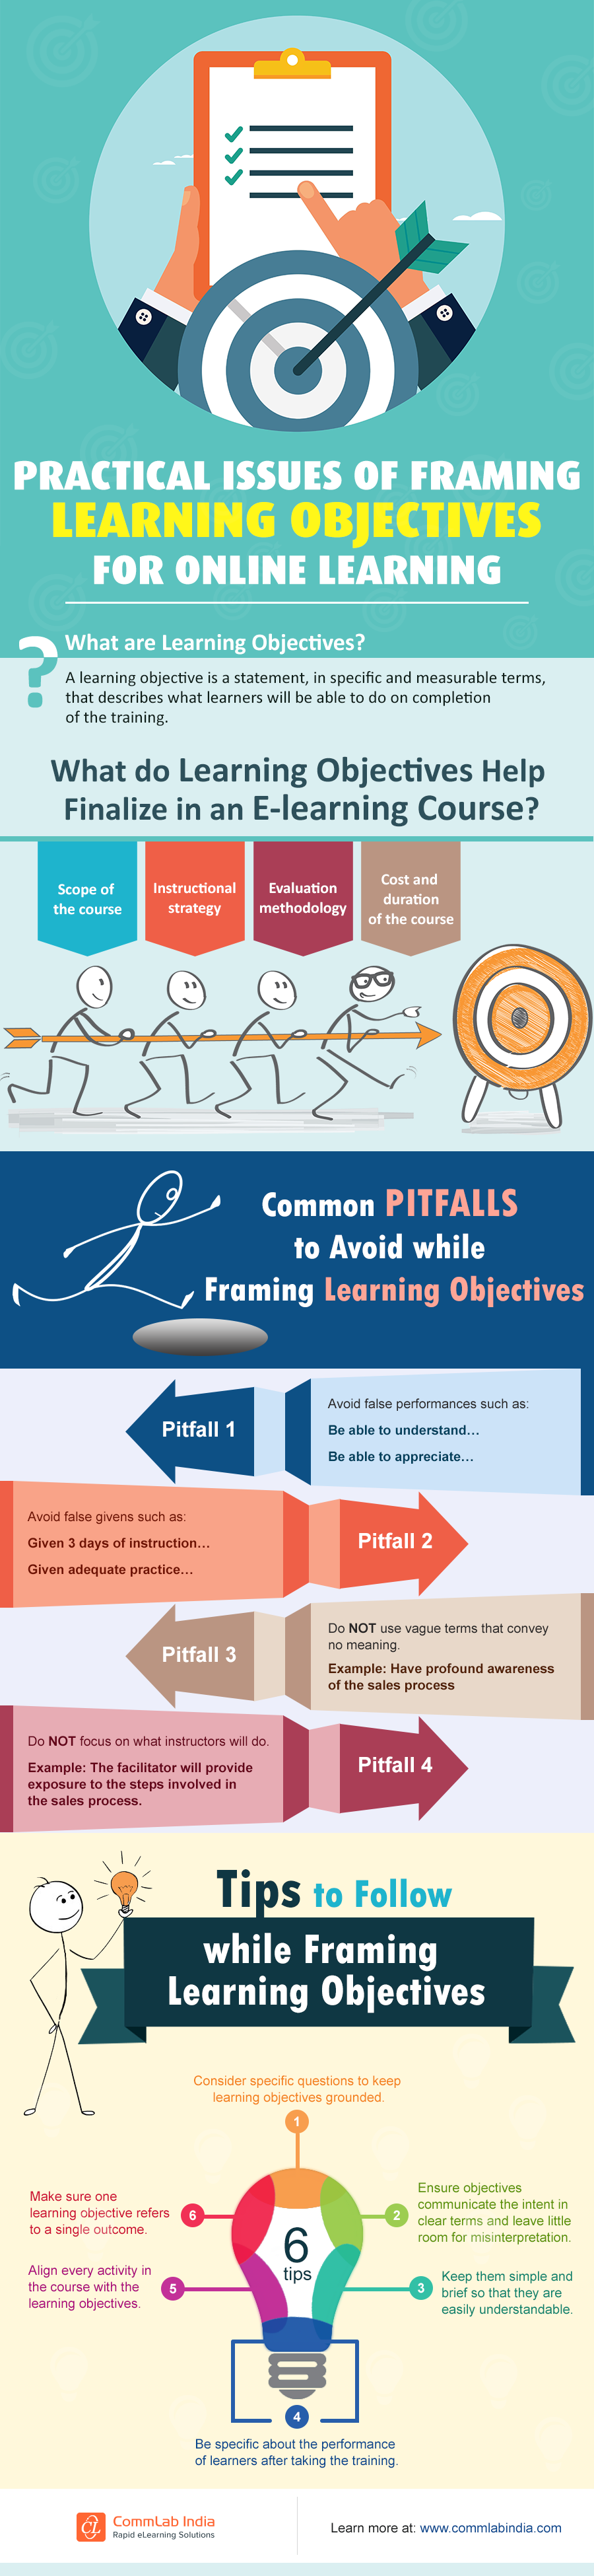 Practical Issues of Framing Learning Objectives for Online Learning [Infographic]